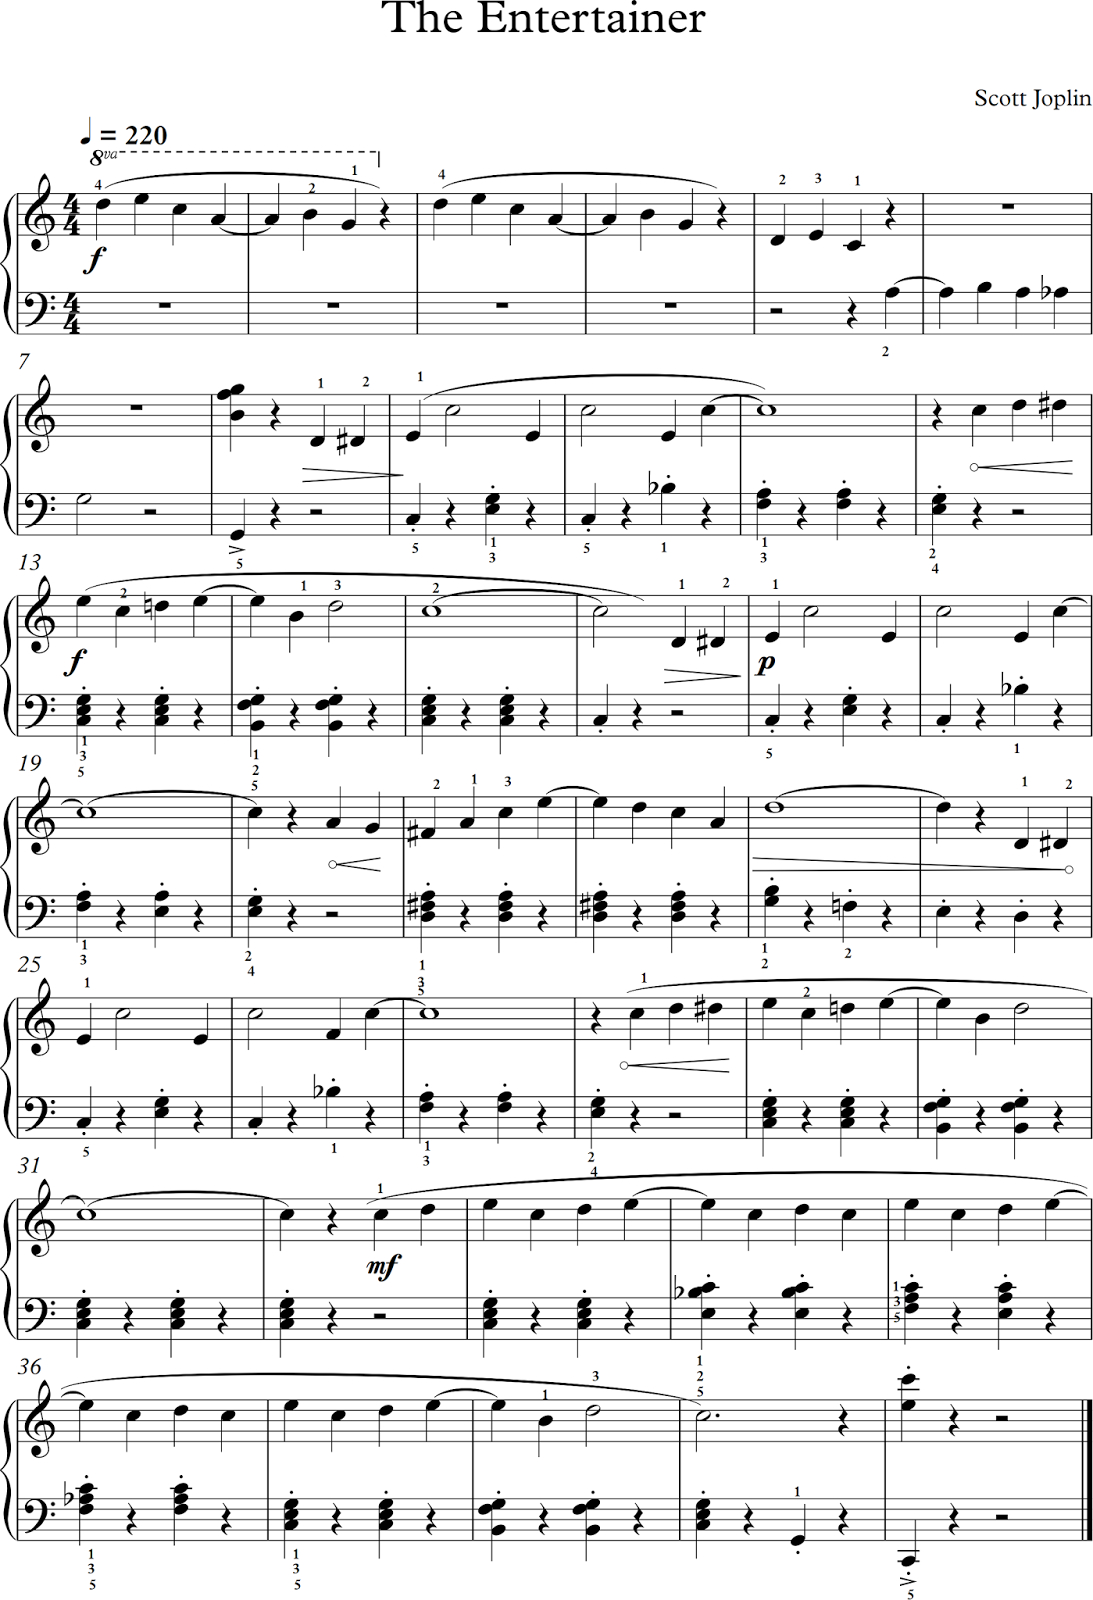 The Entertainer. Scott Joplin. Partitura Para Piano. (Banda Sonora - Free Printable Sheet Music For The Entertainer